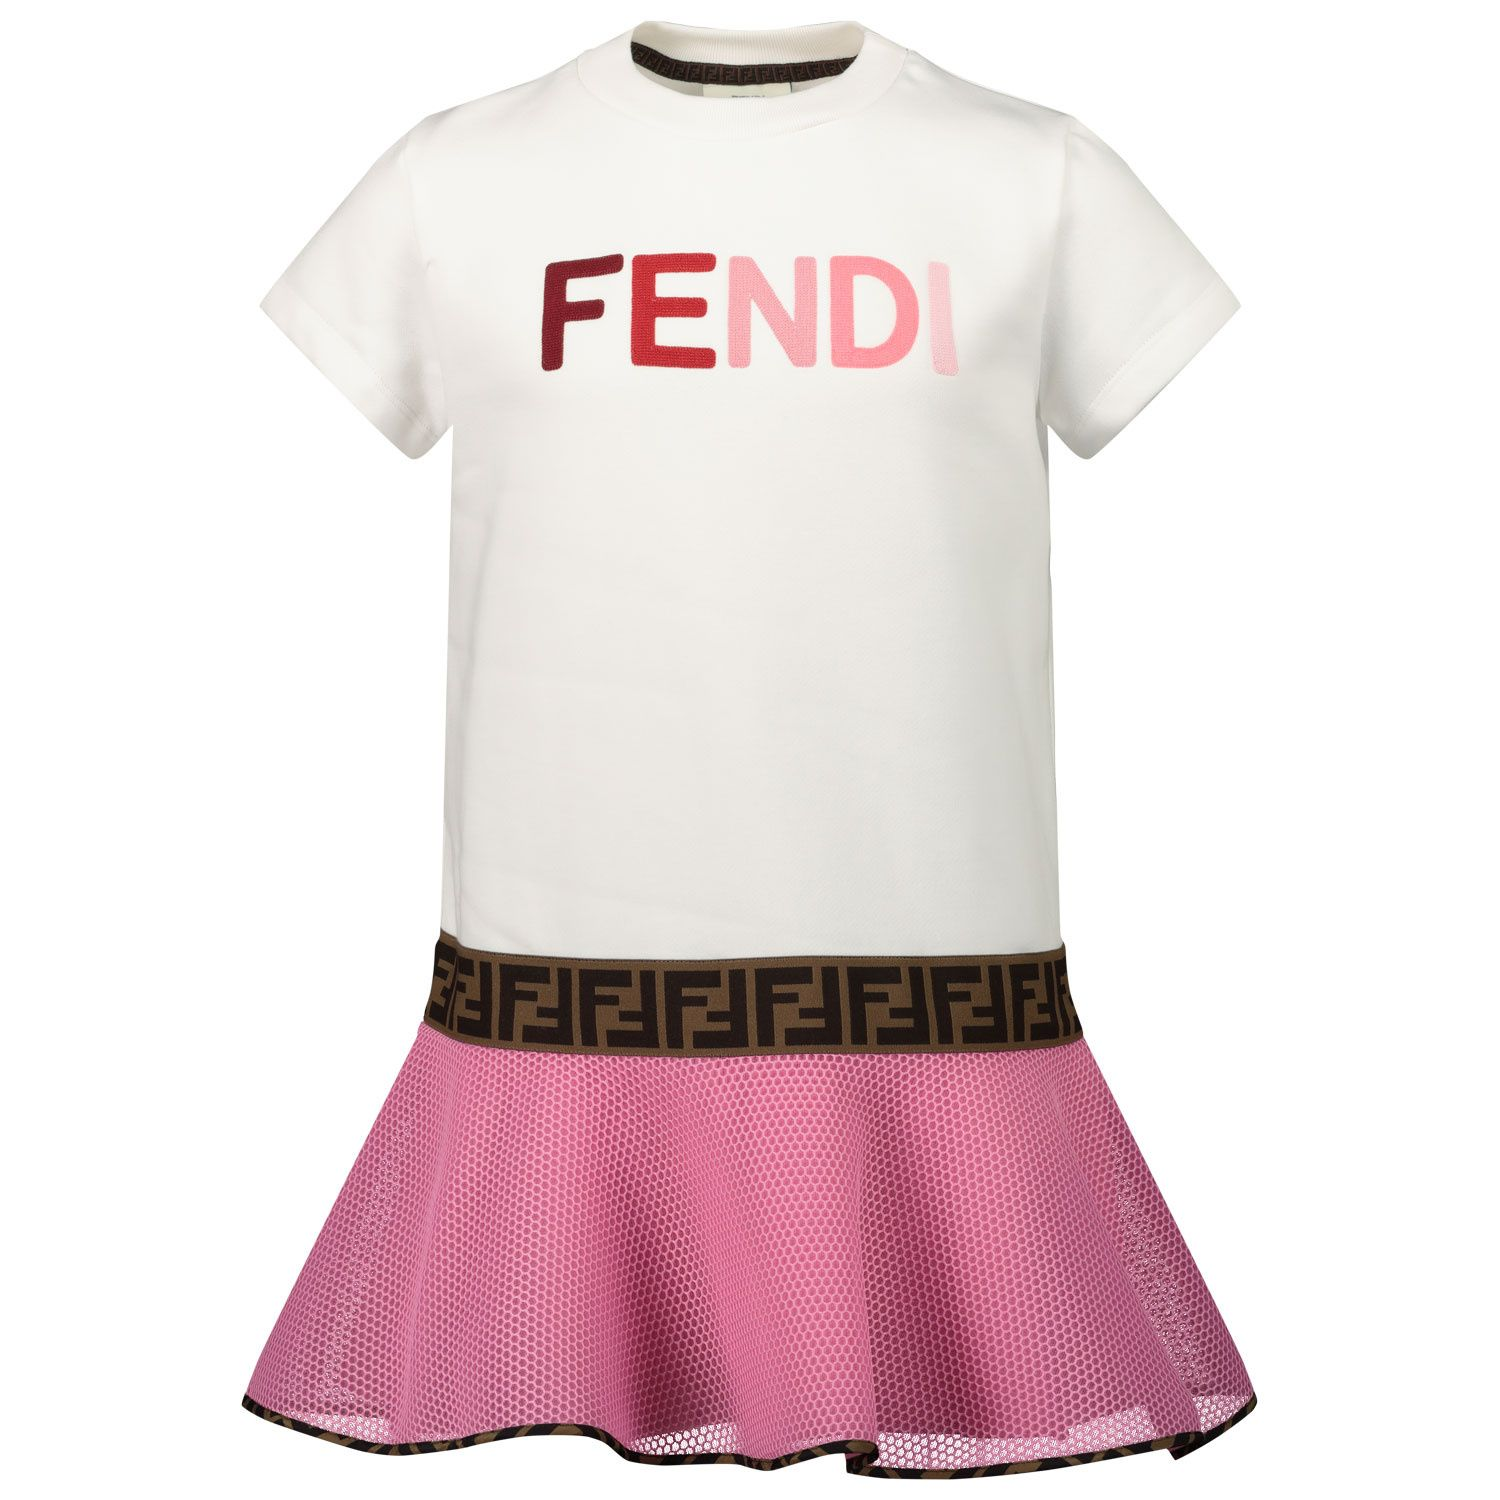 Picture of Fendi JFB381 kids dress pink